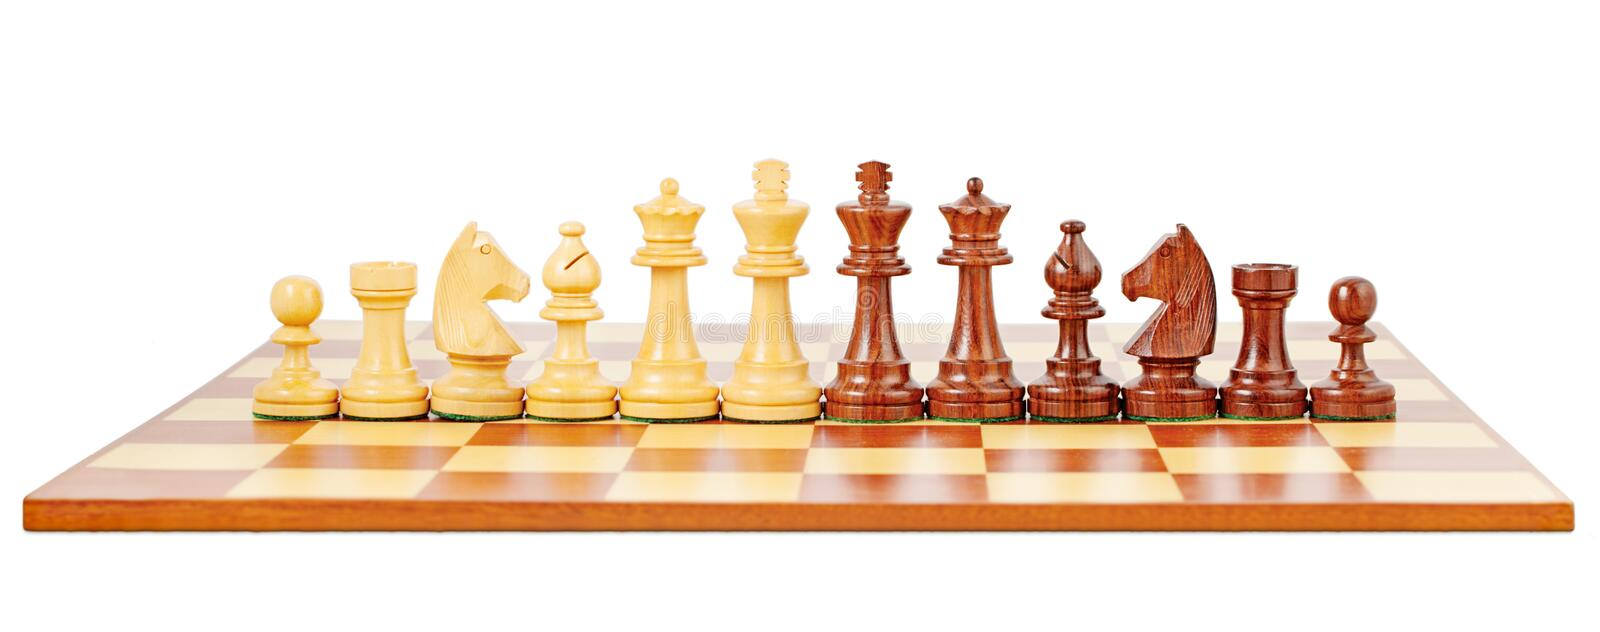 Chess board and chessmen stock photo